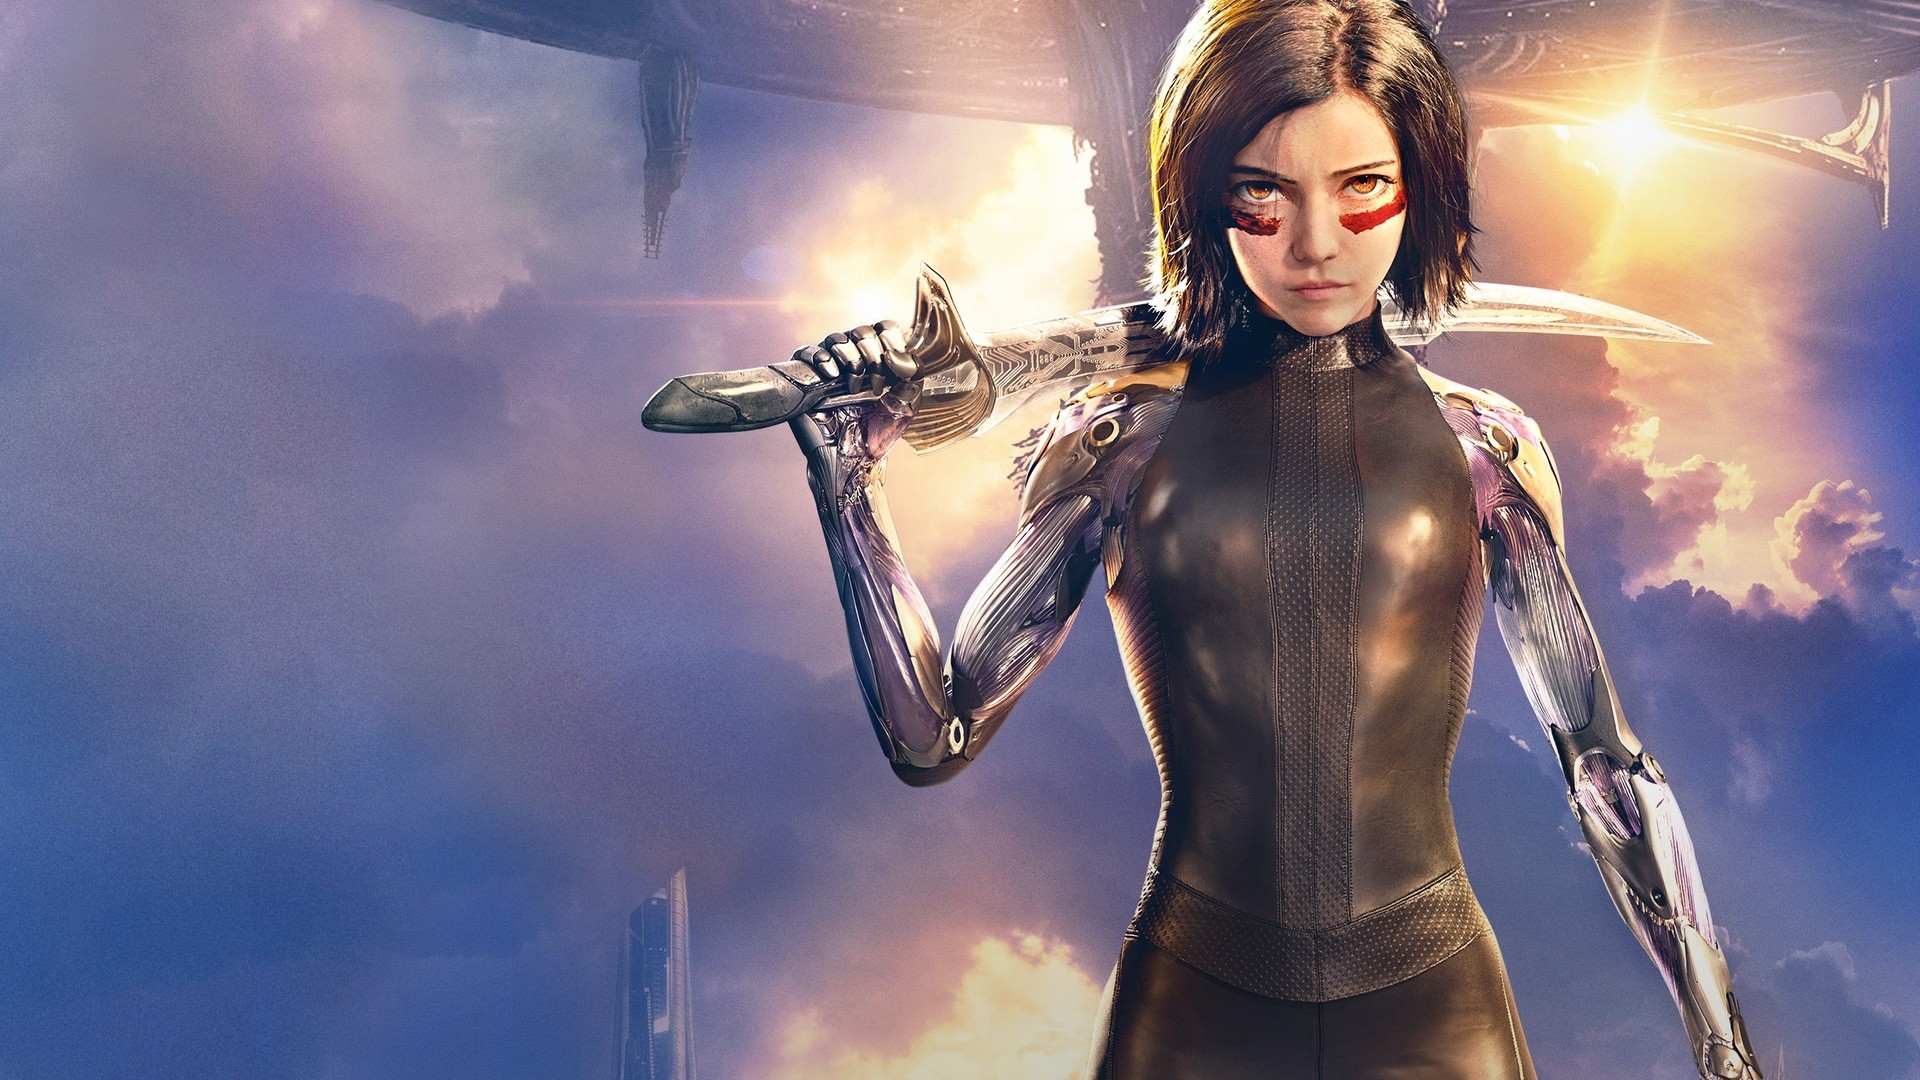 Alita Battle Angel wallpaper for computer